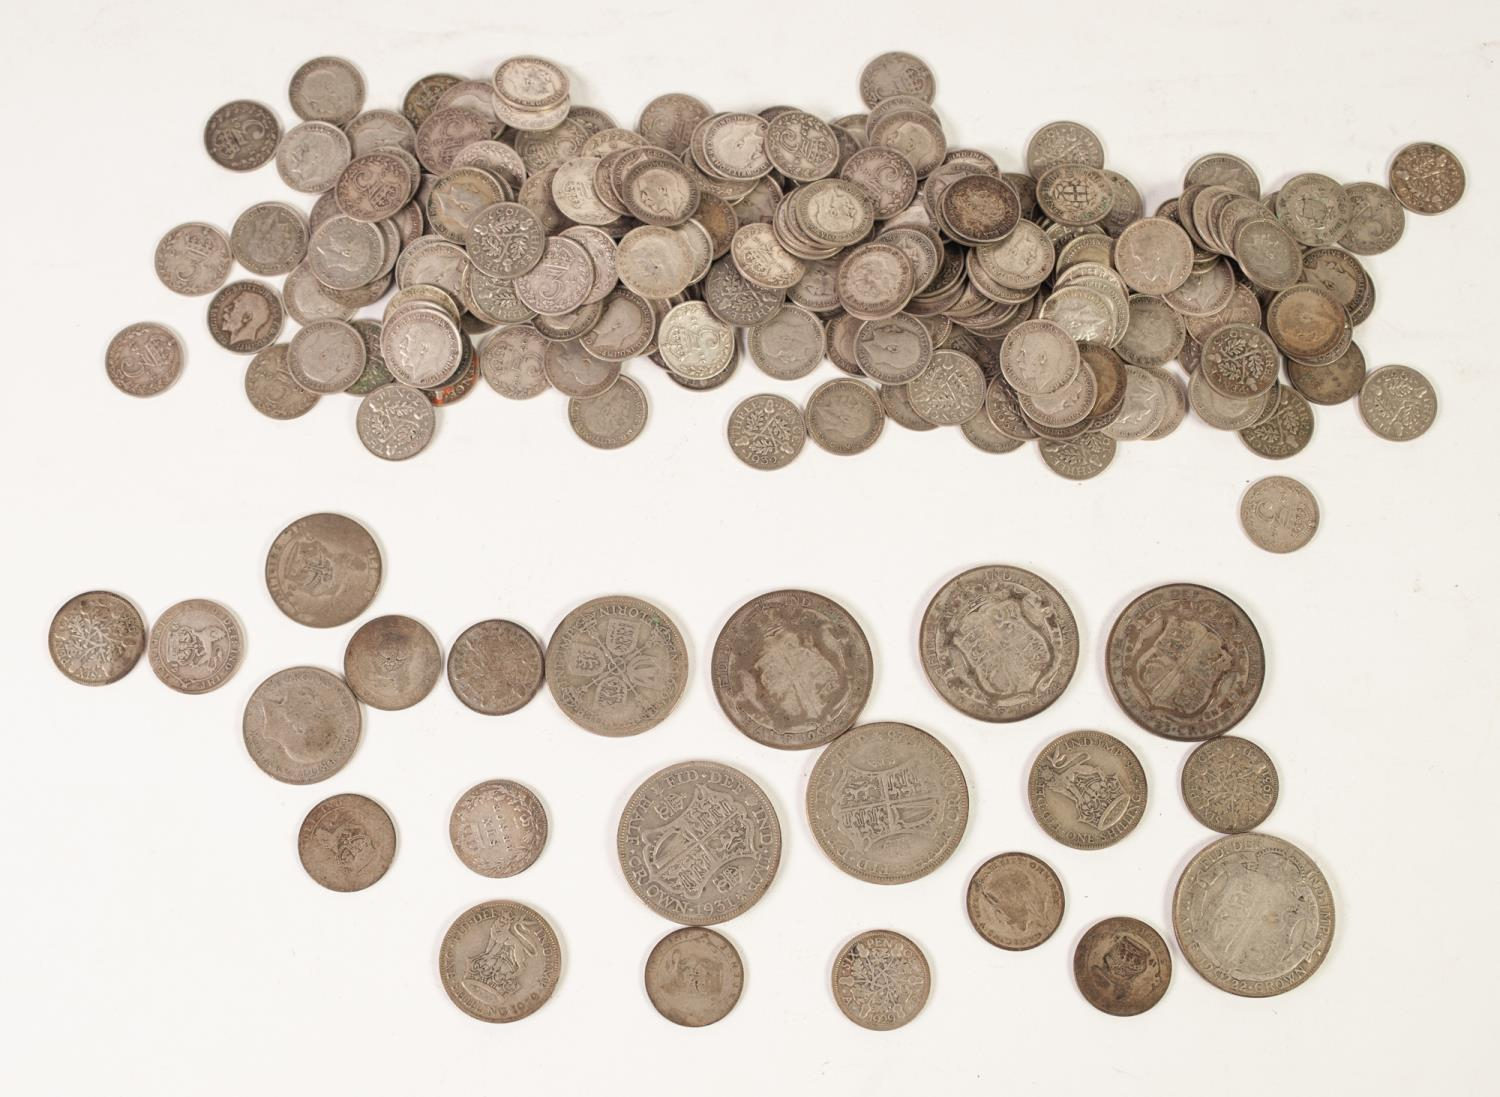 Lot 12 - APPROXIMATELY 220 GEORGE V SILVER THREE PENCE PIECES, mainly VF, together with 22 OTHER PIECES OF